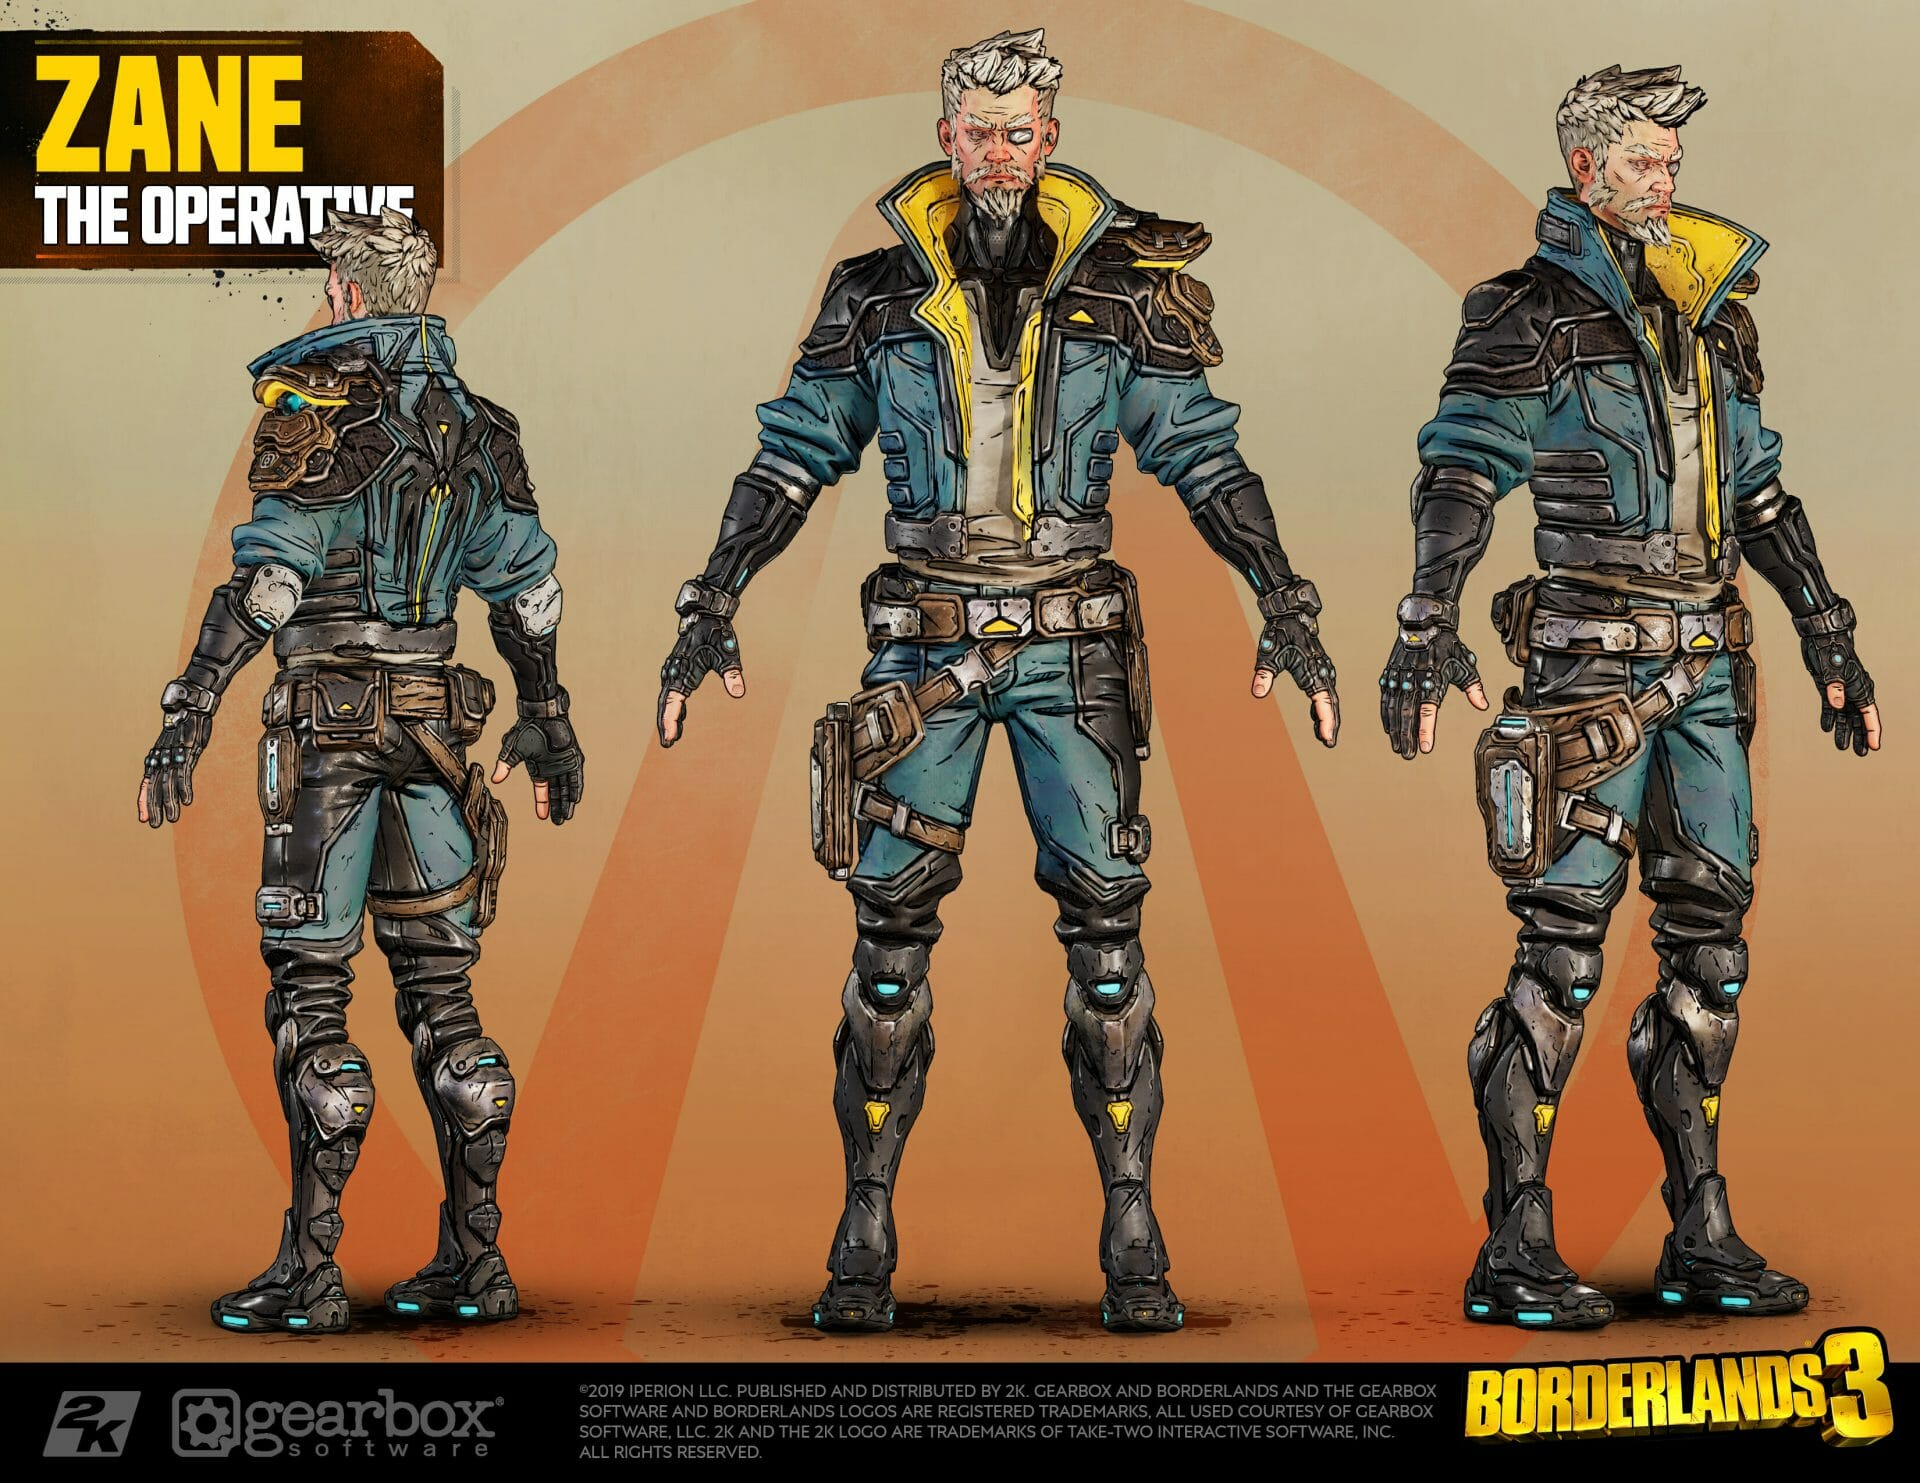 Zane, The Operative, Borderlands 3